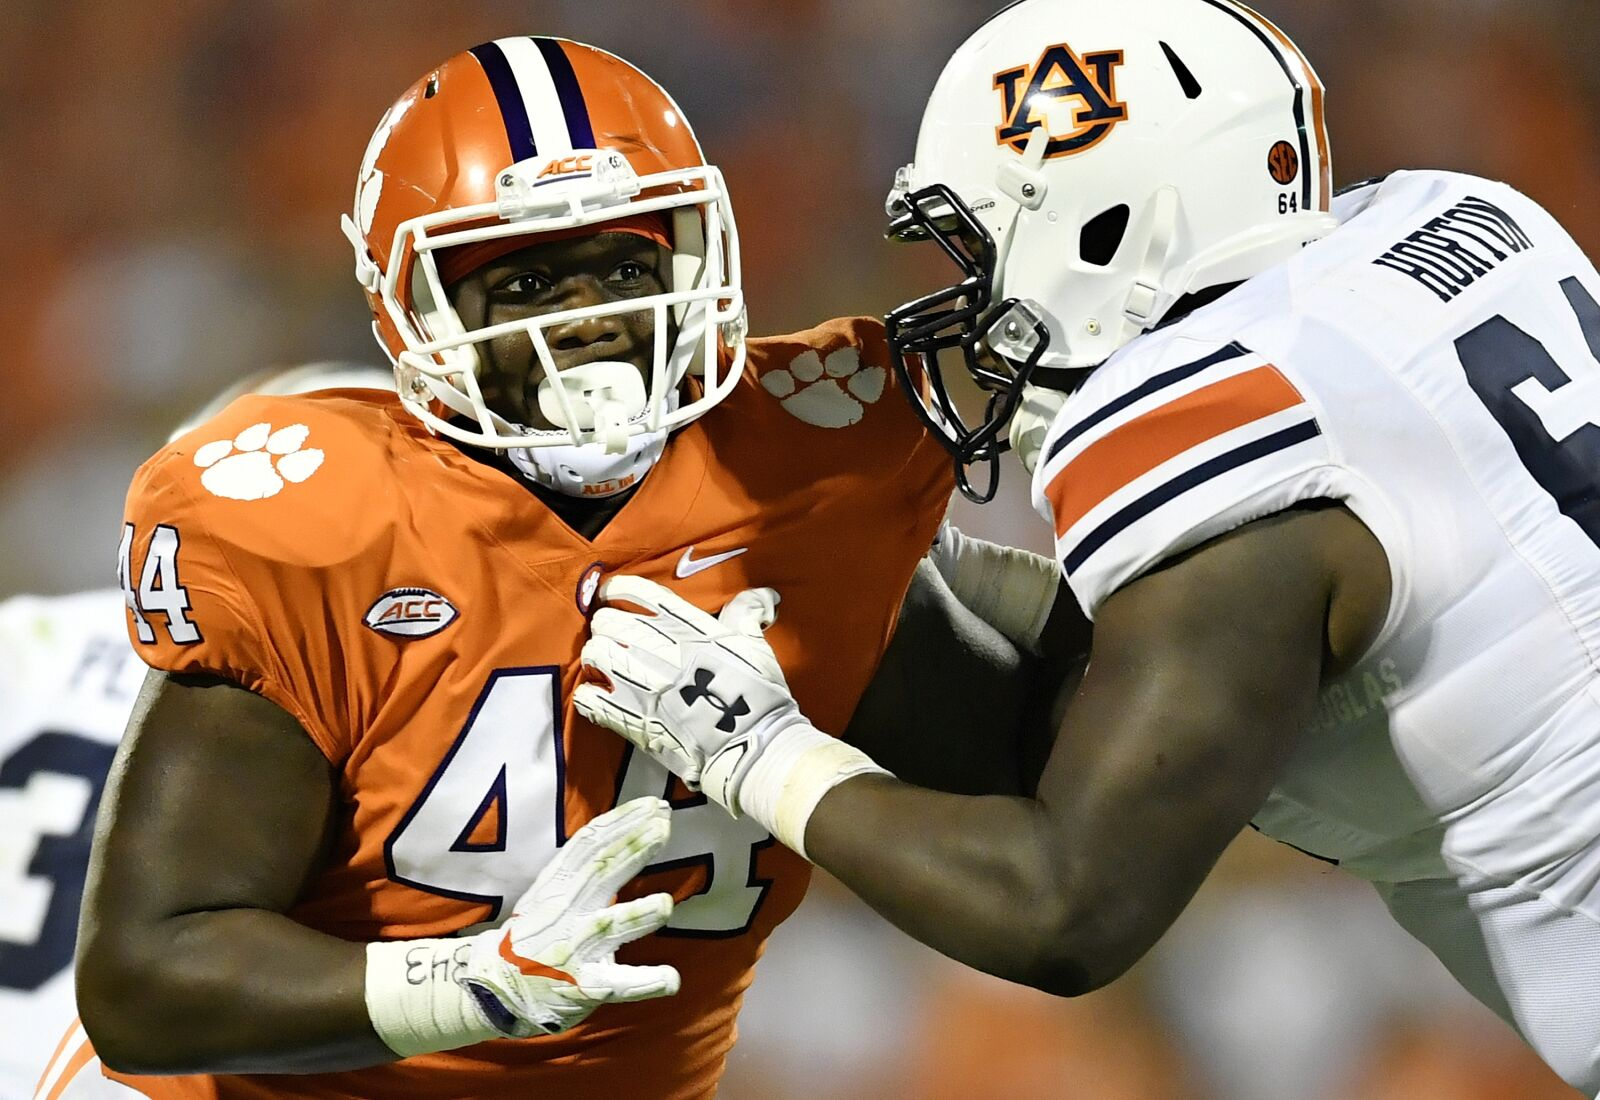 Clemson Football: Nyles Pinckney reportedly carted off field after practice